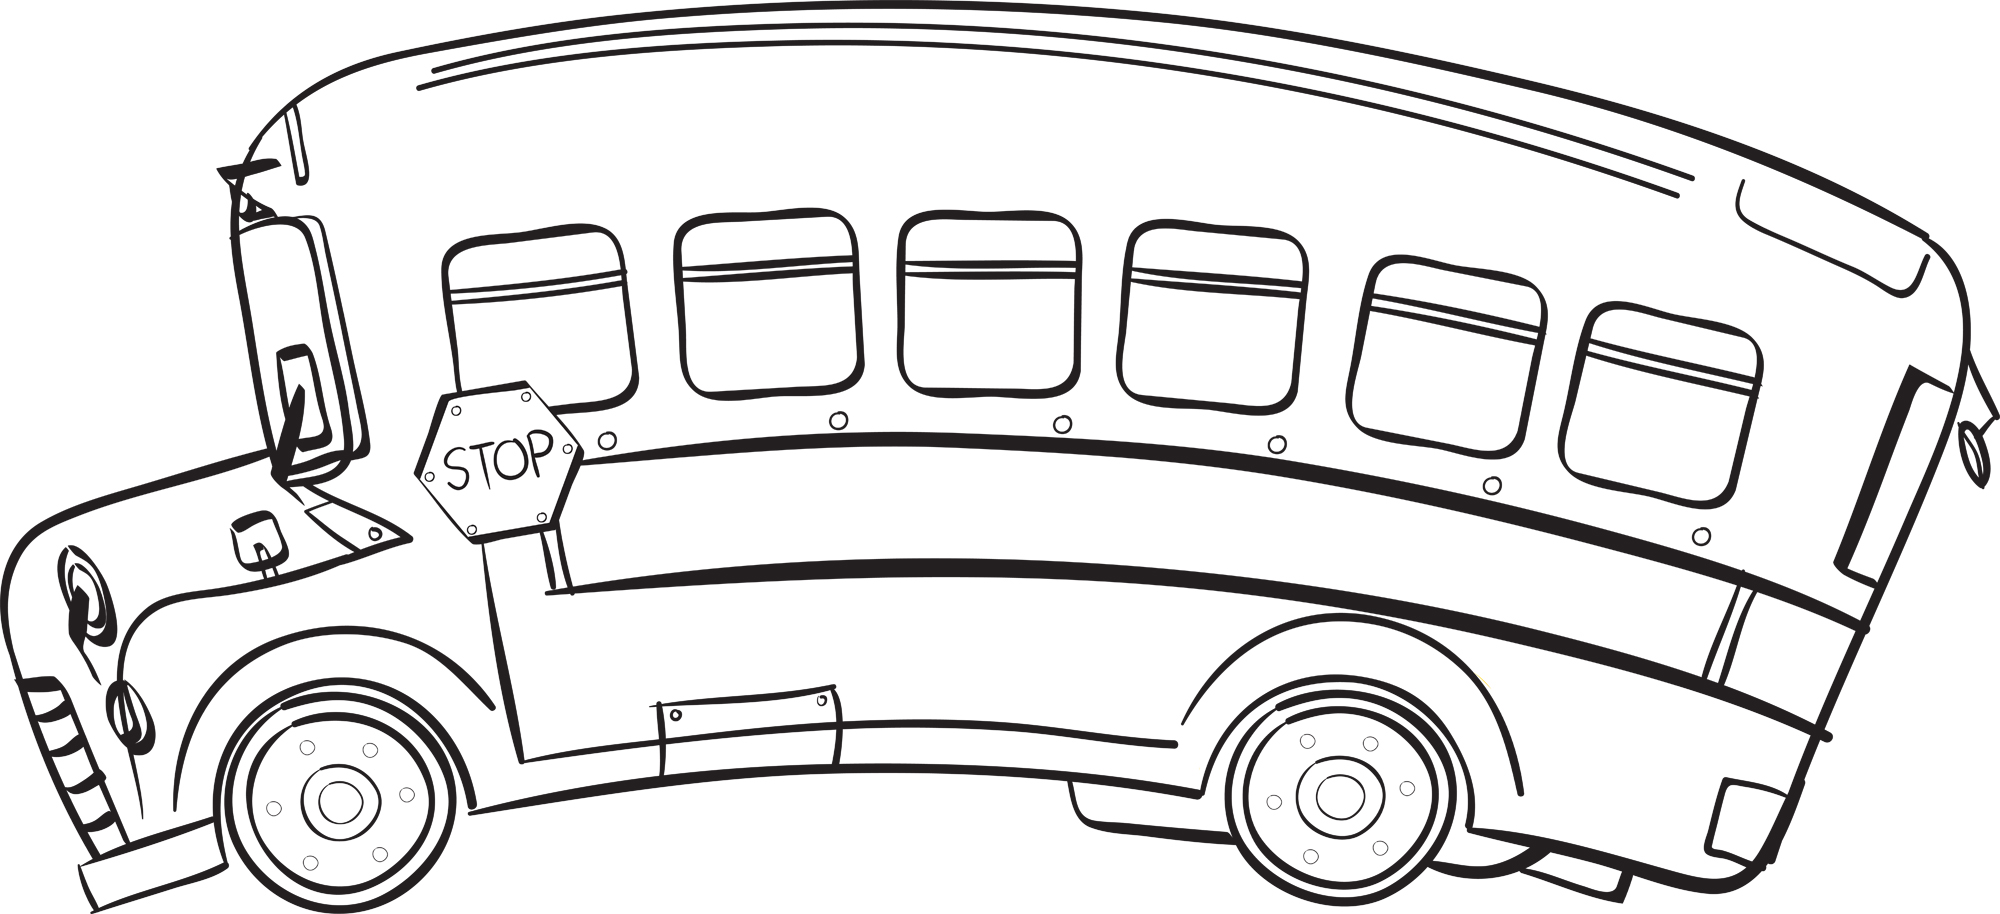 best bus clipart black and white 11187 clipartion com school bus clipart jpg school bus clip art free